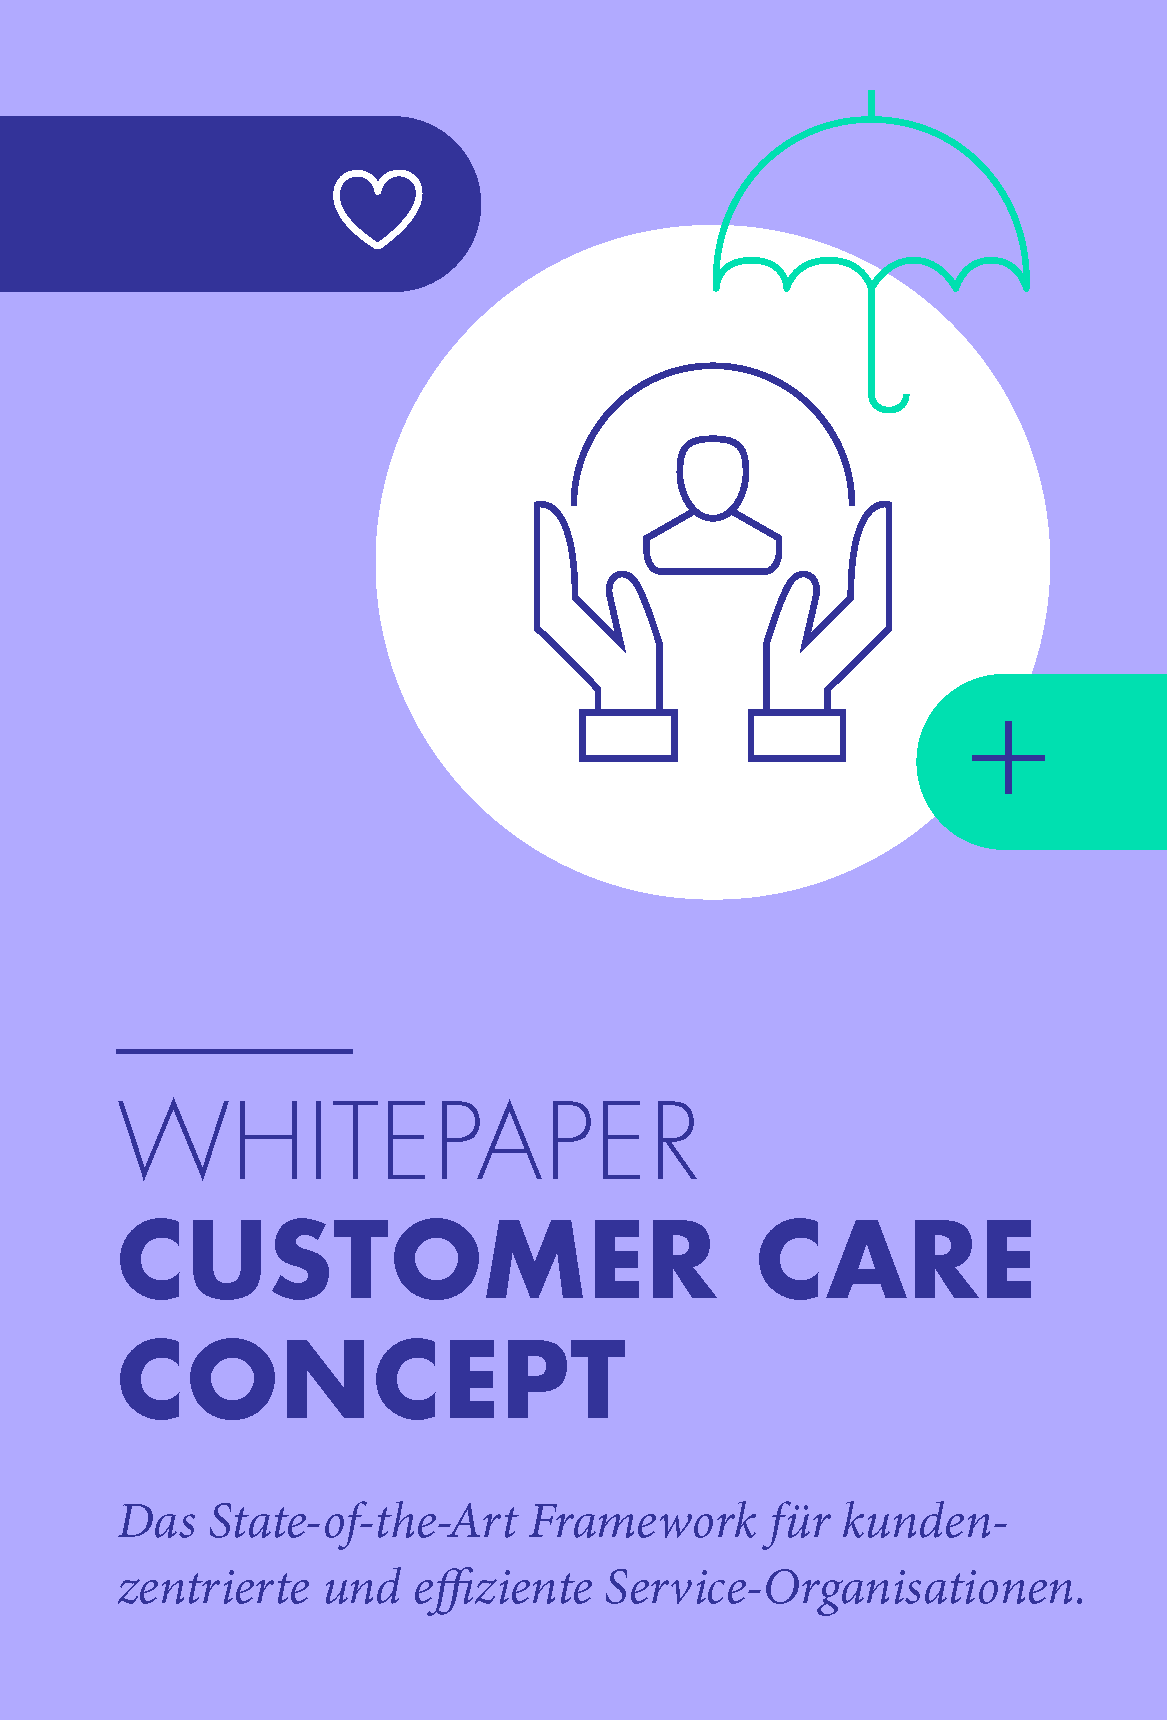 Whitepaper Customer Care Concept